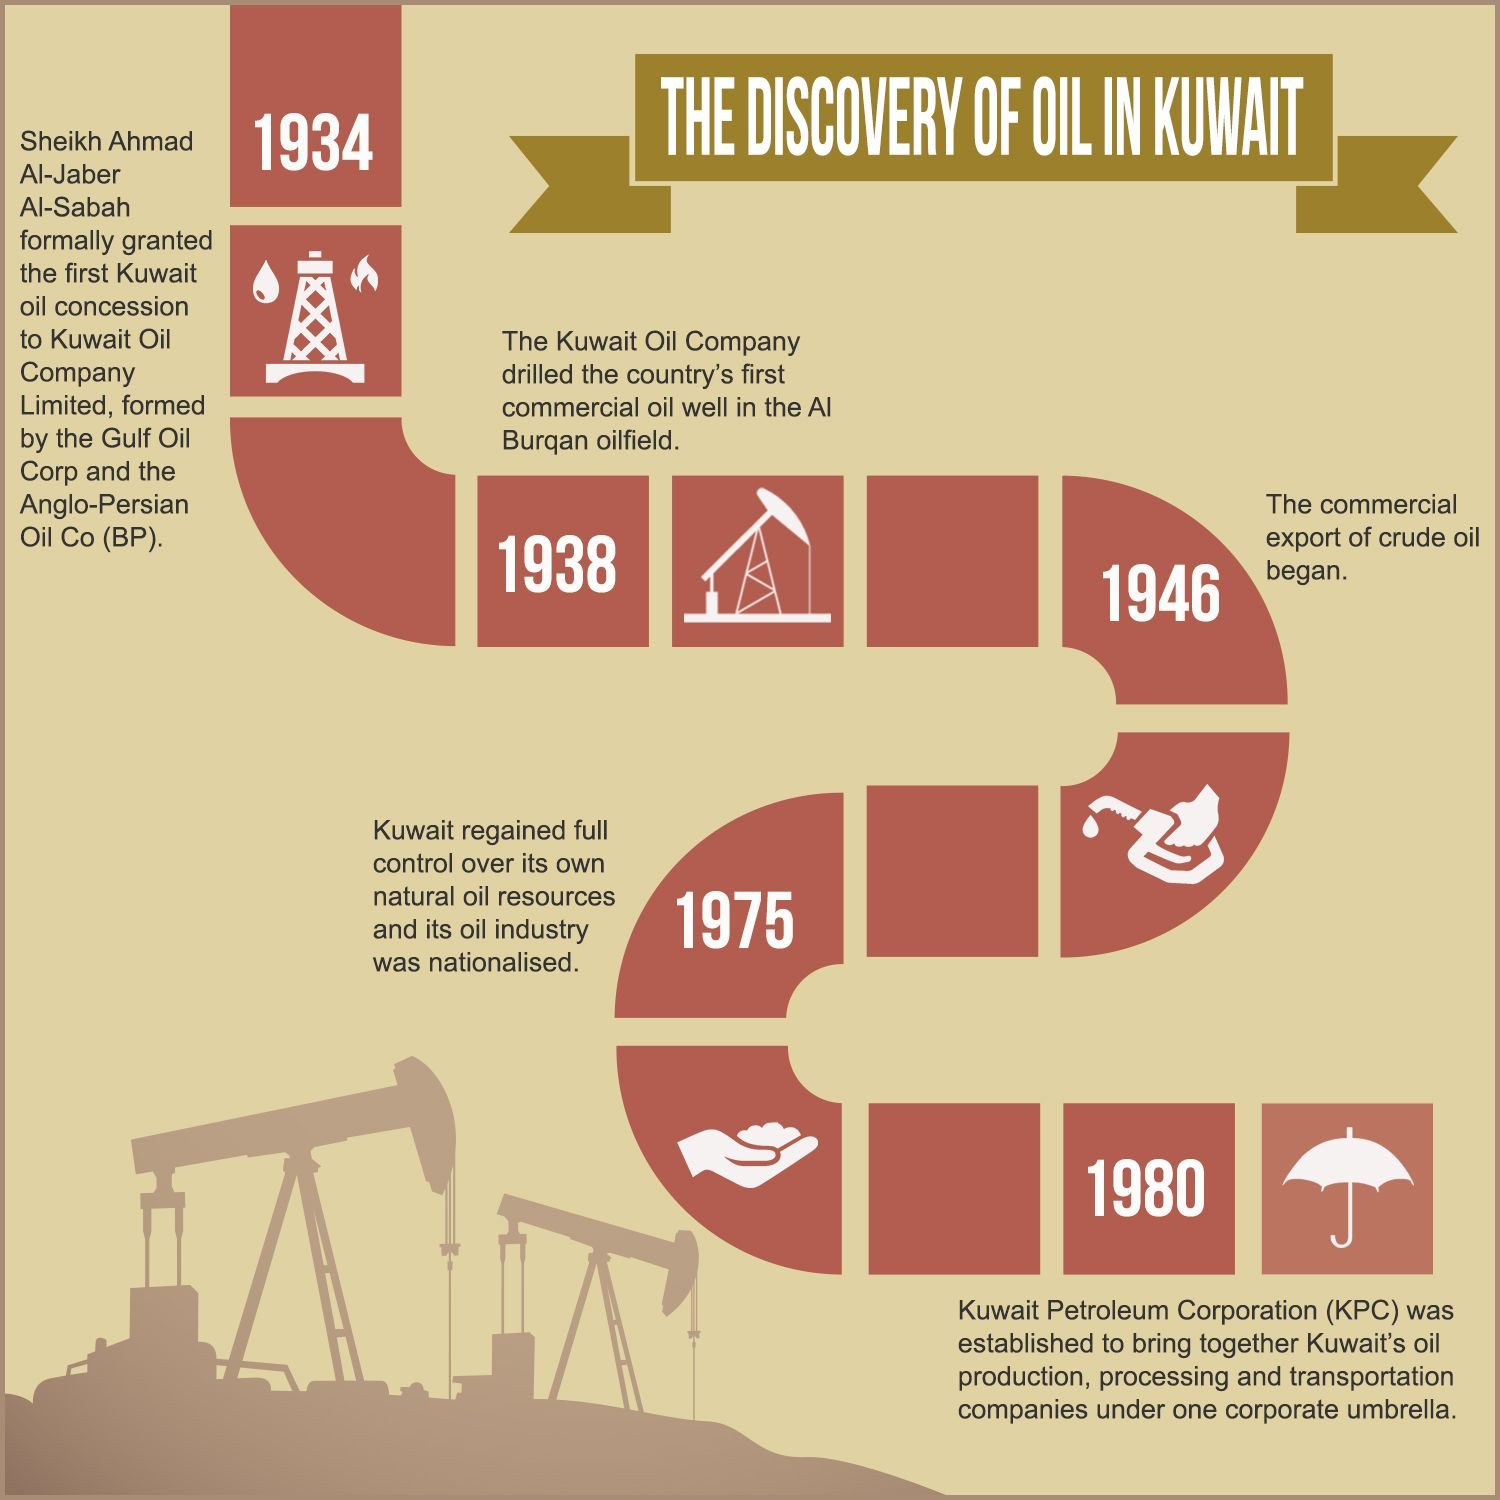 an overview of the kuwaits oil production The kuwait oil company was founded in 1934 by anglo-persian oil company and gulf oil as an equally owned partnership[2] the oil concession rights were for the meanwhile, kwidf is one of the most strategic projects the company participated in to support the oil and gas production in kuwait.